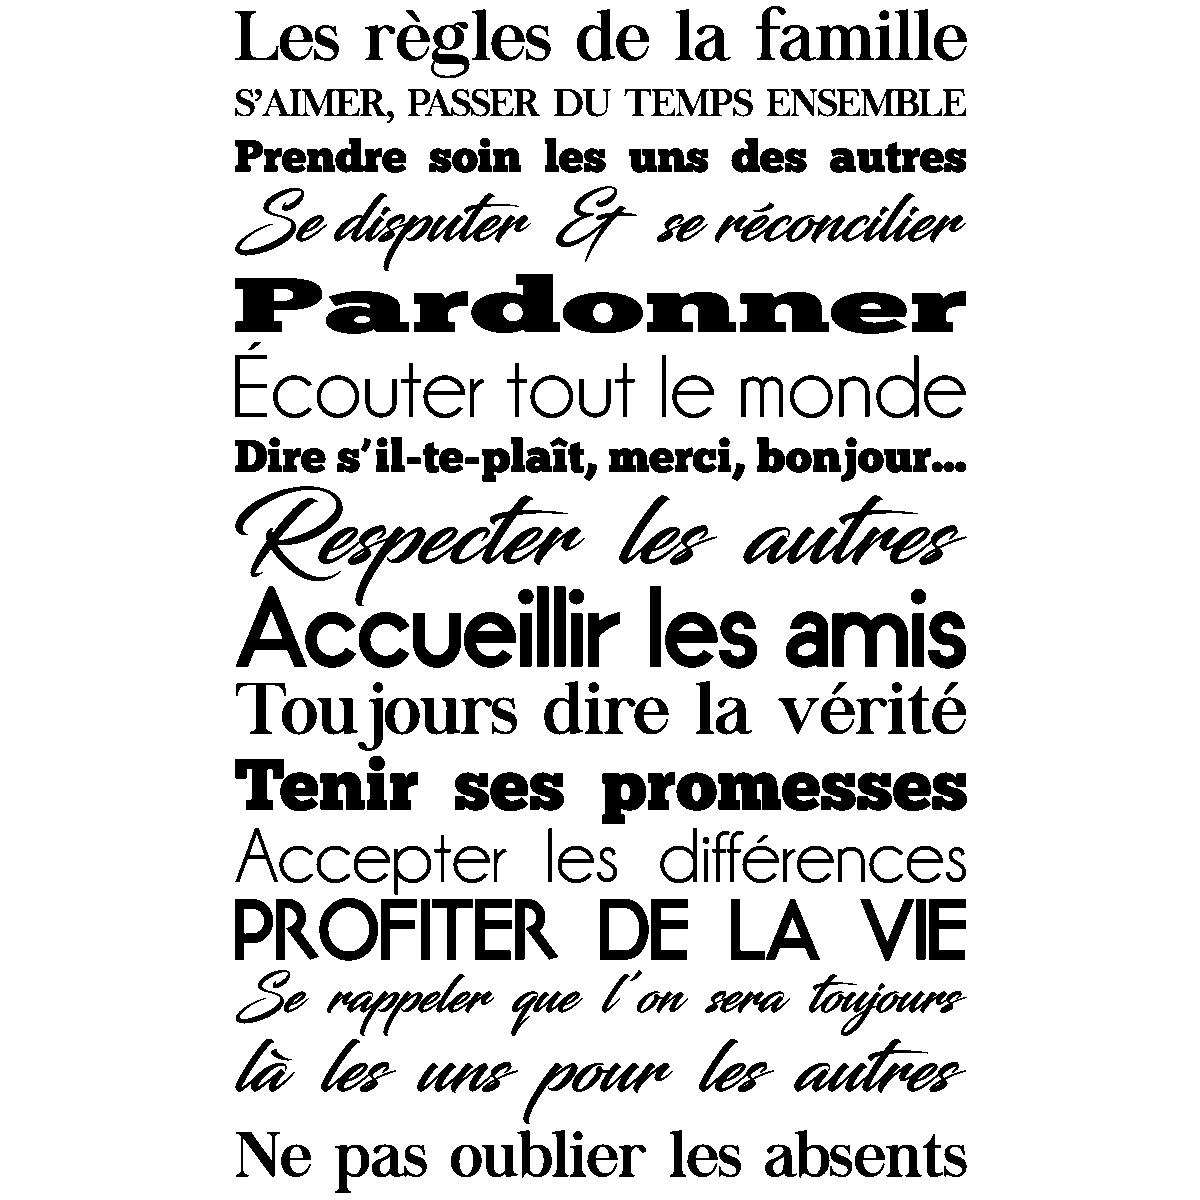 sticker les r gles de la famille design stickers citations fran ais ambiance sticker. Black Bedroom Furniture Sets. Home Design Ideas